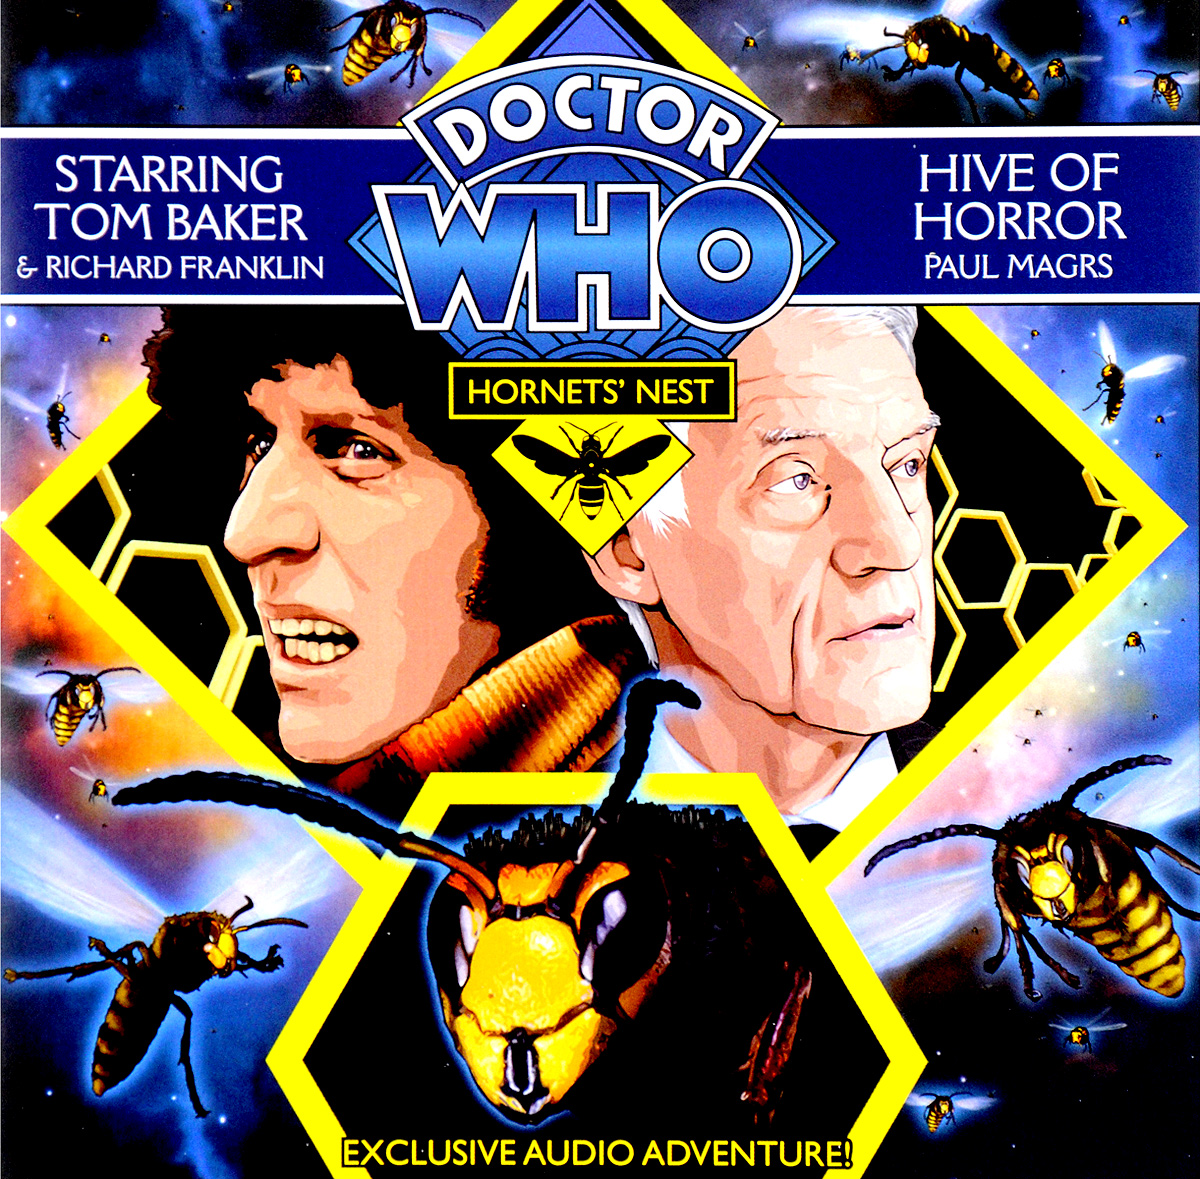 Doctor Who Hornets' Nest 5 - Hive Of Horror magrs paul doctor who hornets nest 5 hive of horror